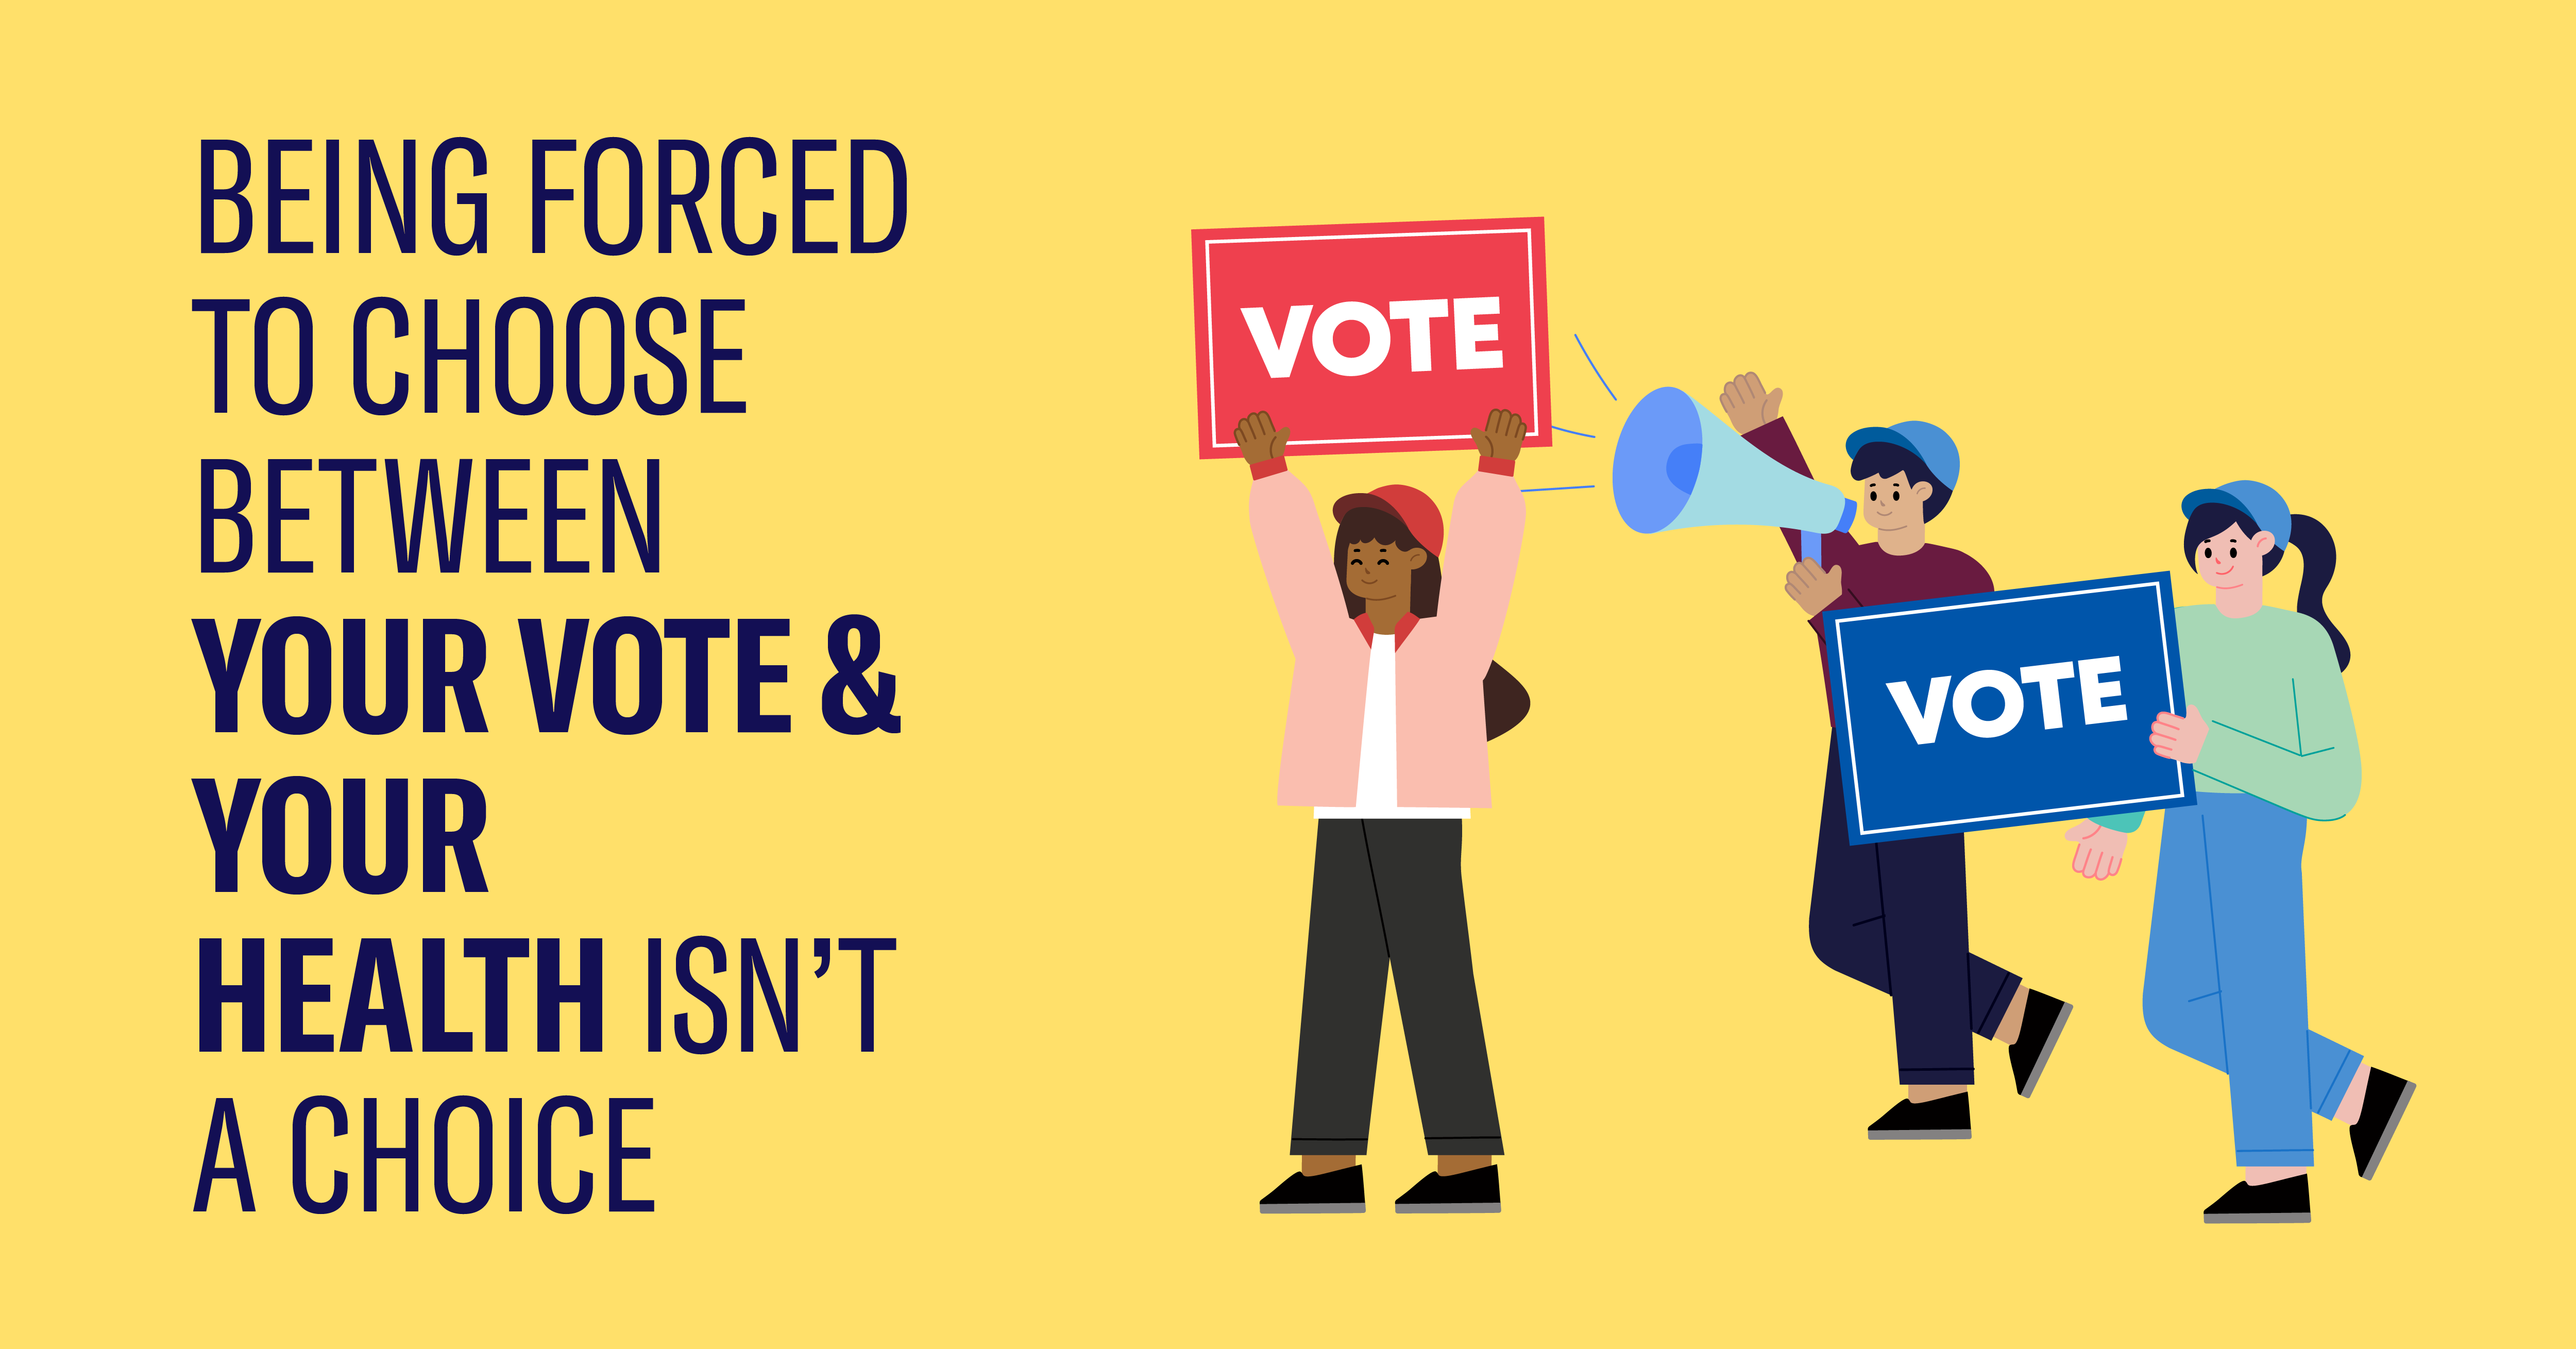 Being forced to choose between your vote & your health isn't a choice.